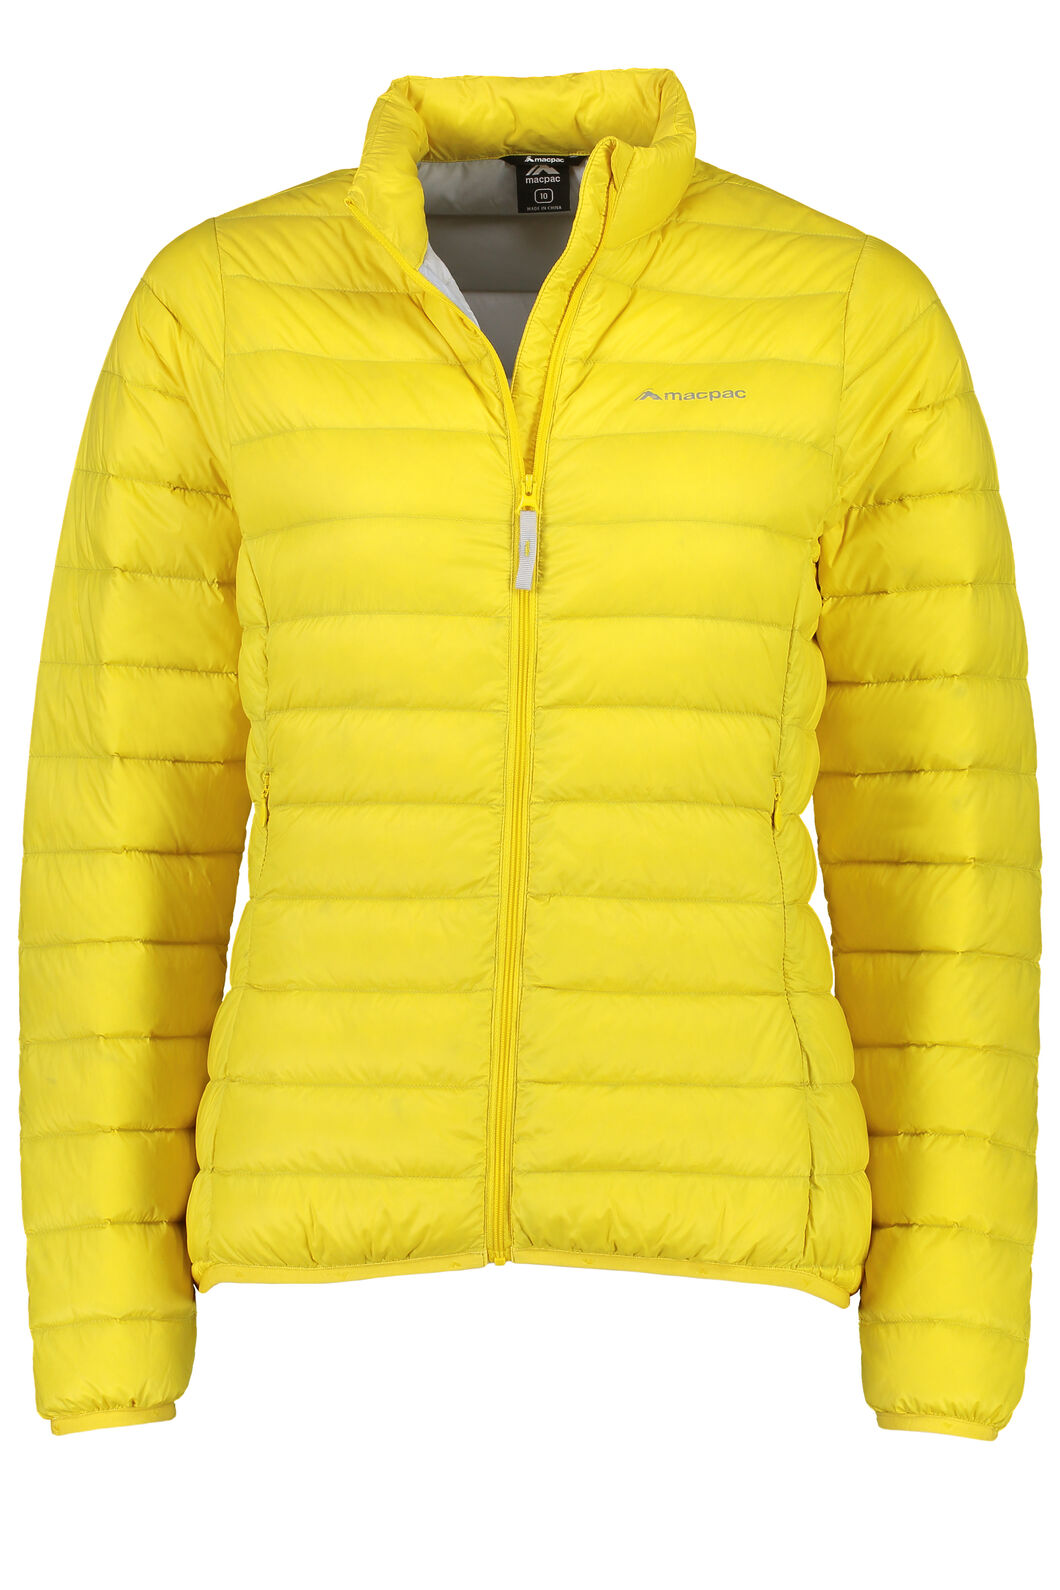 Macpac Uber Light Down Jacket - Women's, Super Lemon, hi-res